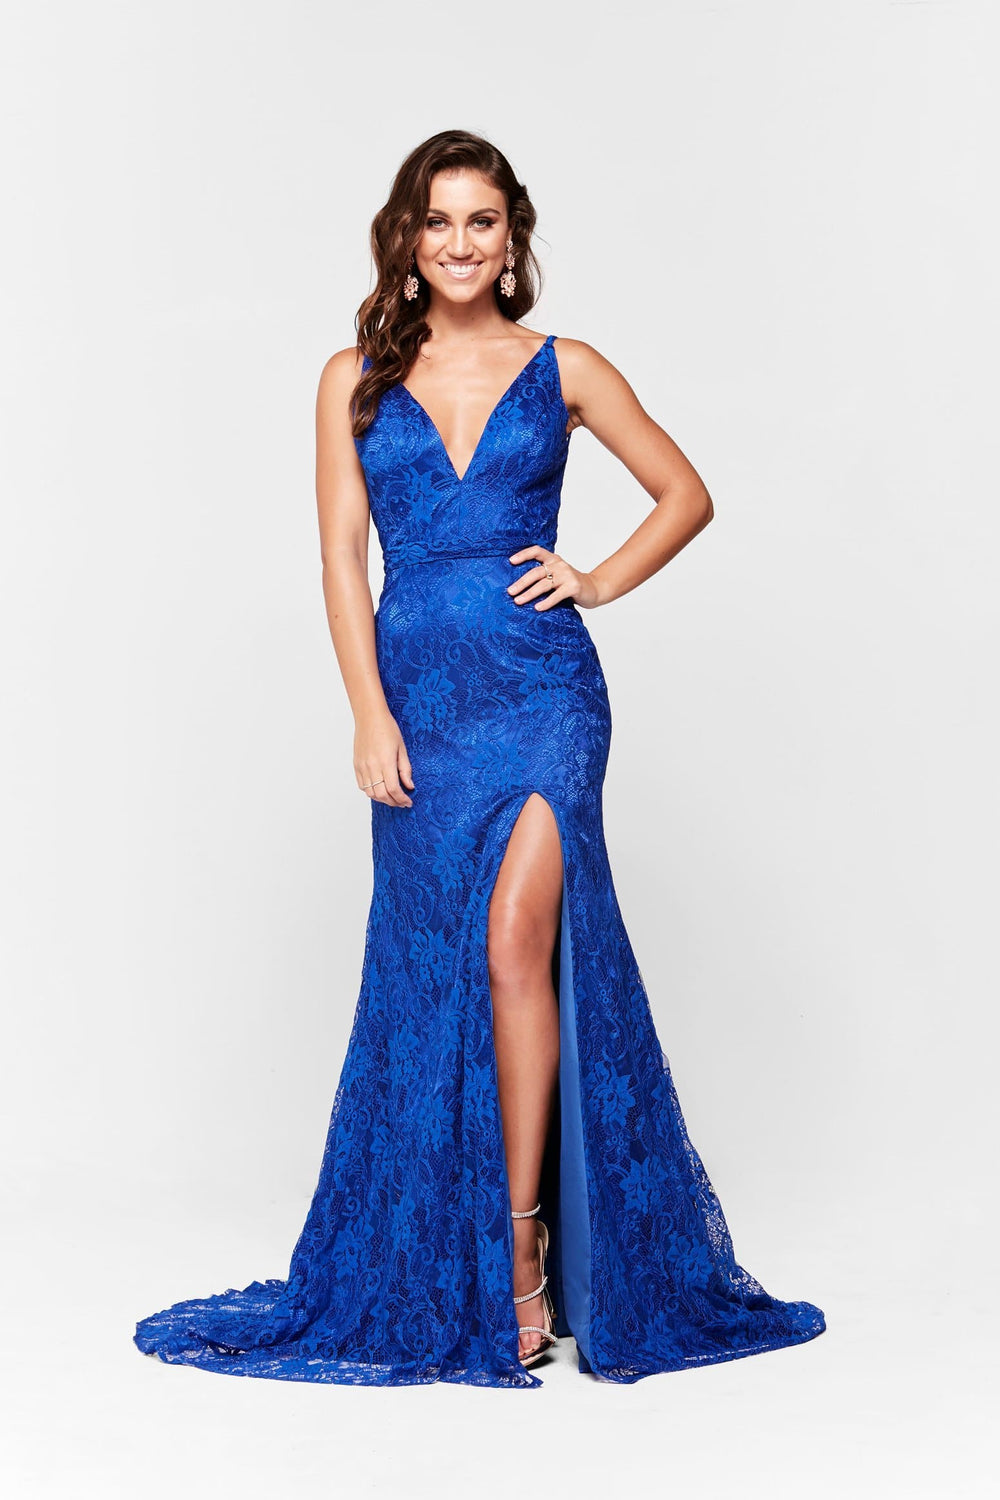 bd82d65857 A N Ayla - Lace V Neck Formal Gown with Side Slit in Royal Blue ...